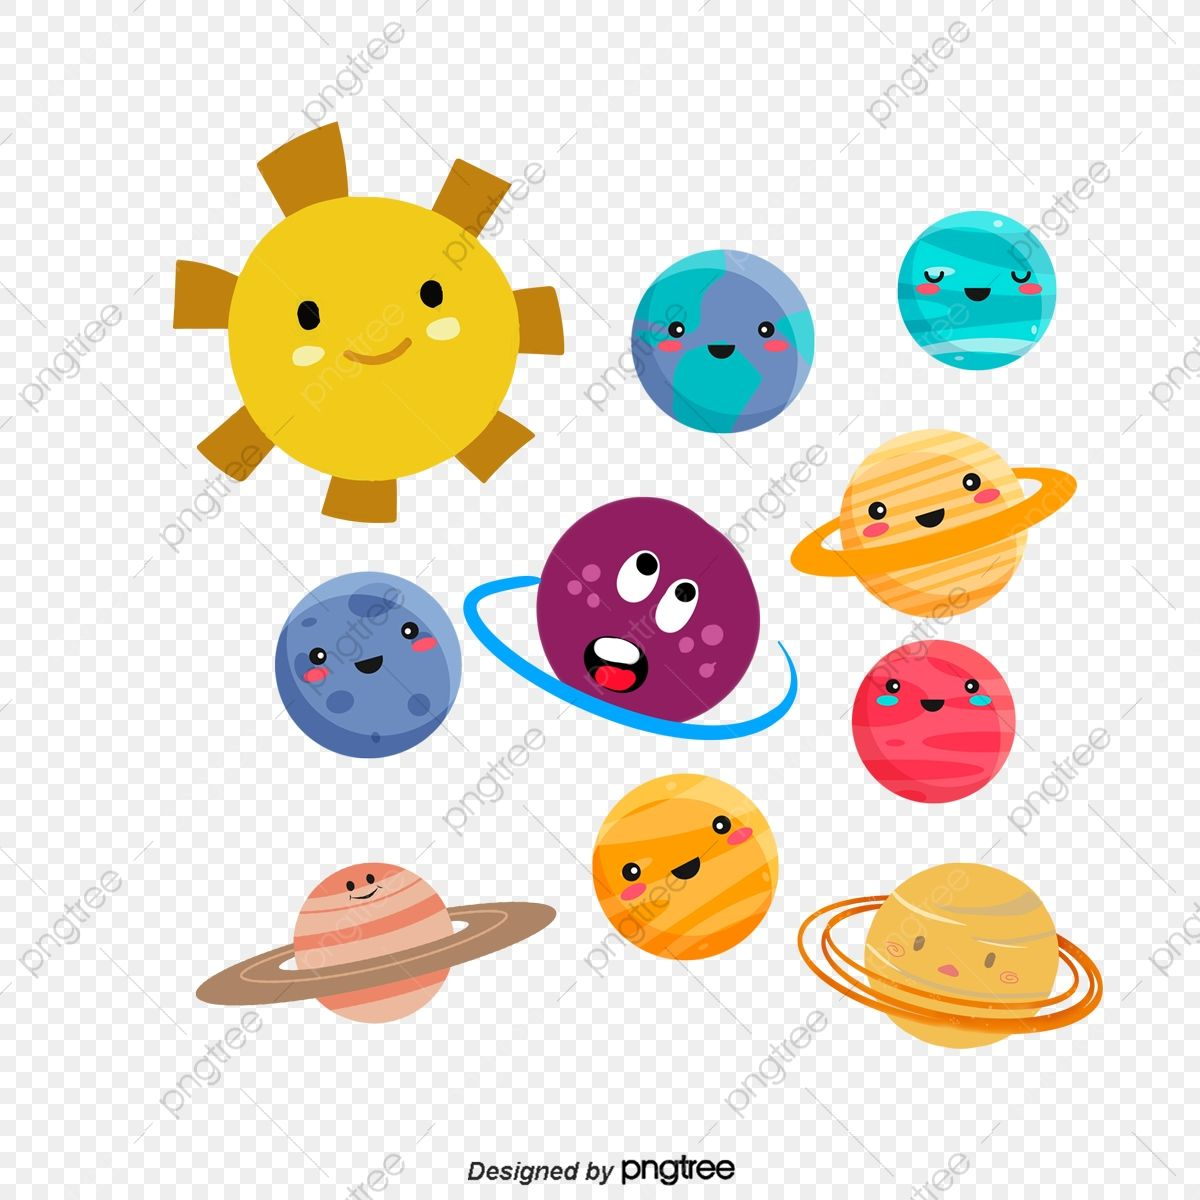 Cartoon Sun And Nine Planets Sun Clipart Hand Painted Illustration Illustration Png Transparent Clipart Image And Psd File For Free Download Cartoon Sun Graphic Resources Clip Art